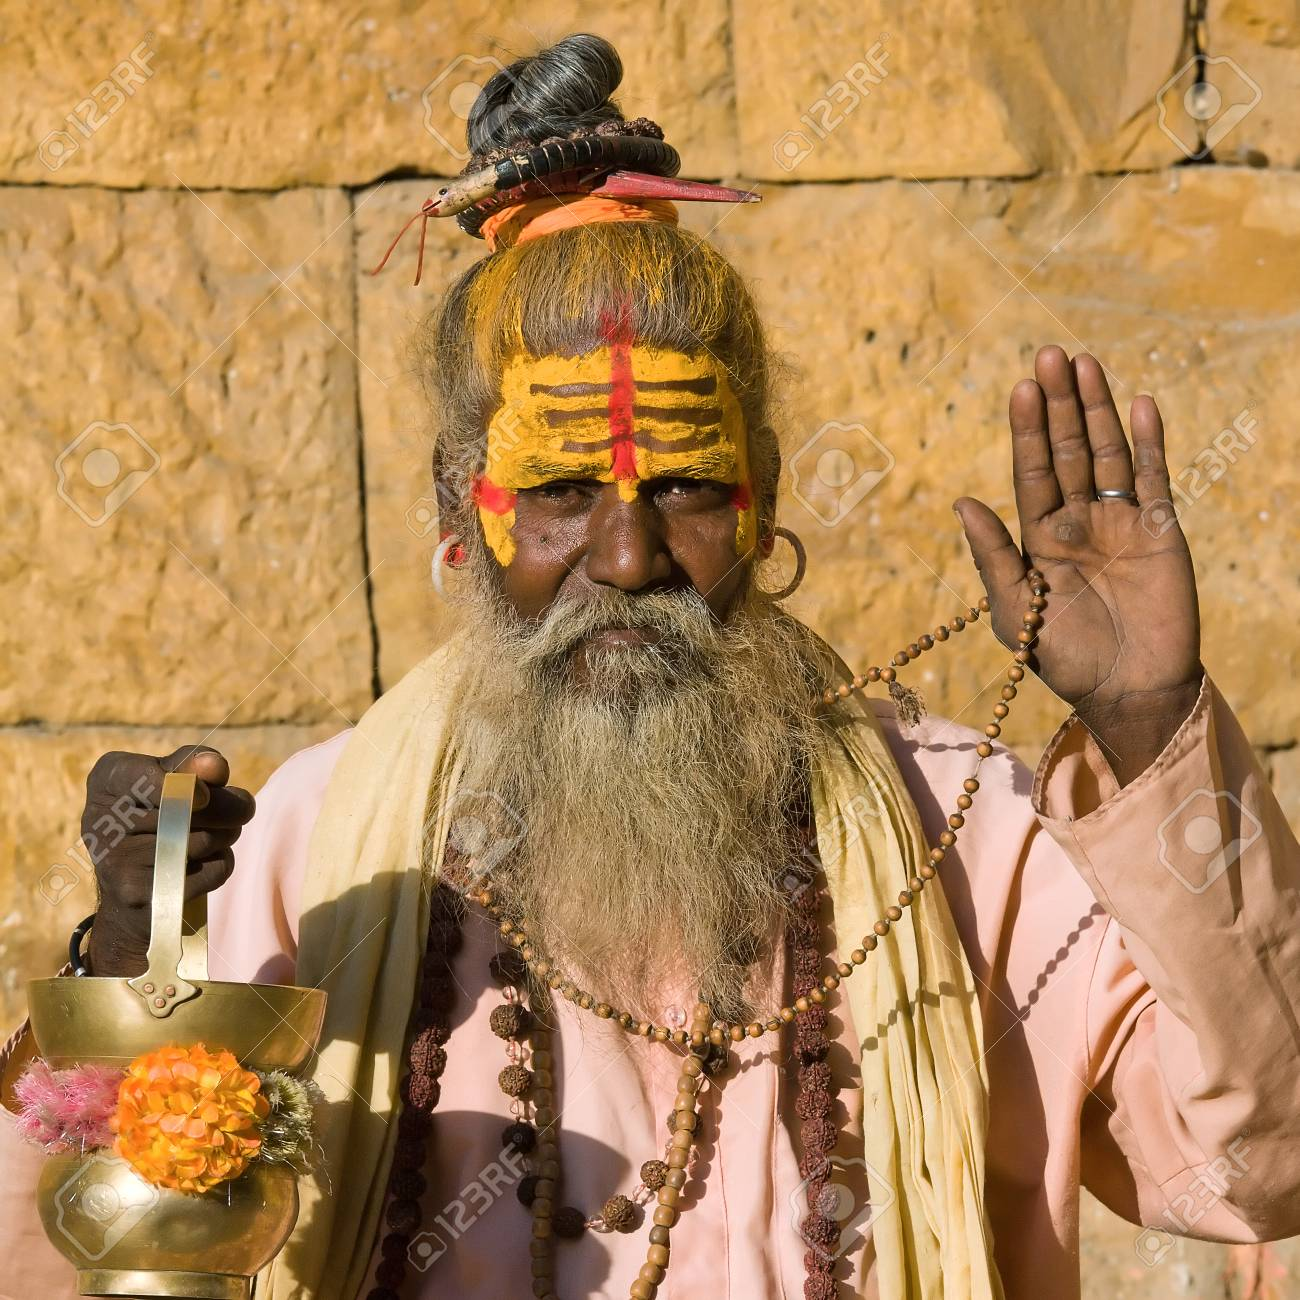 Indian sadhu (holy man). Jaisalmer, Rajasthan, India. Stock Photo - 29125445